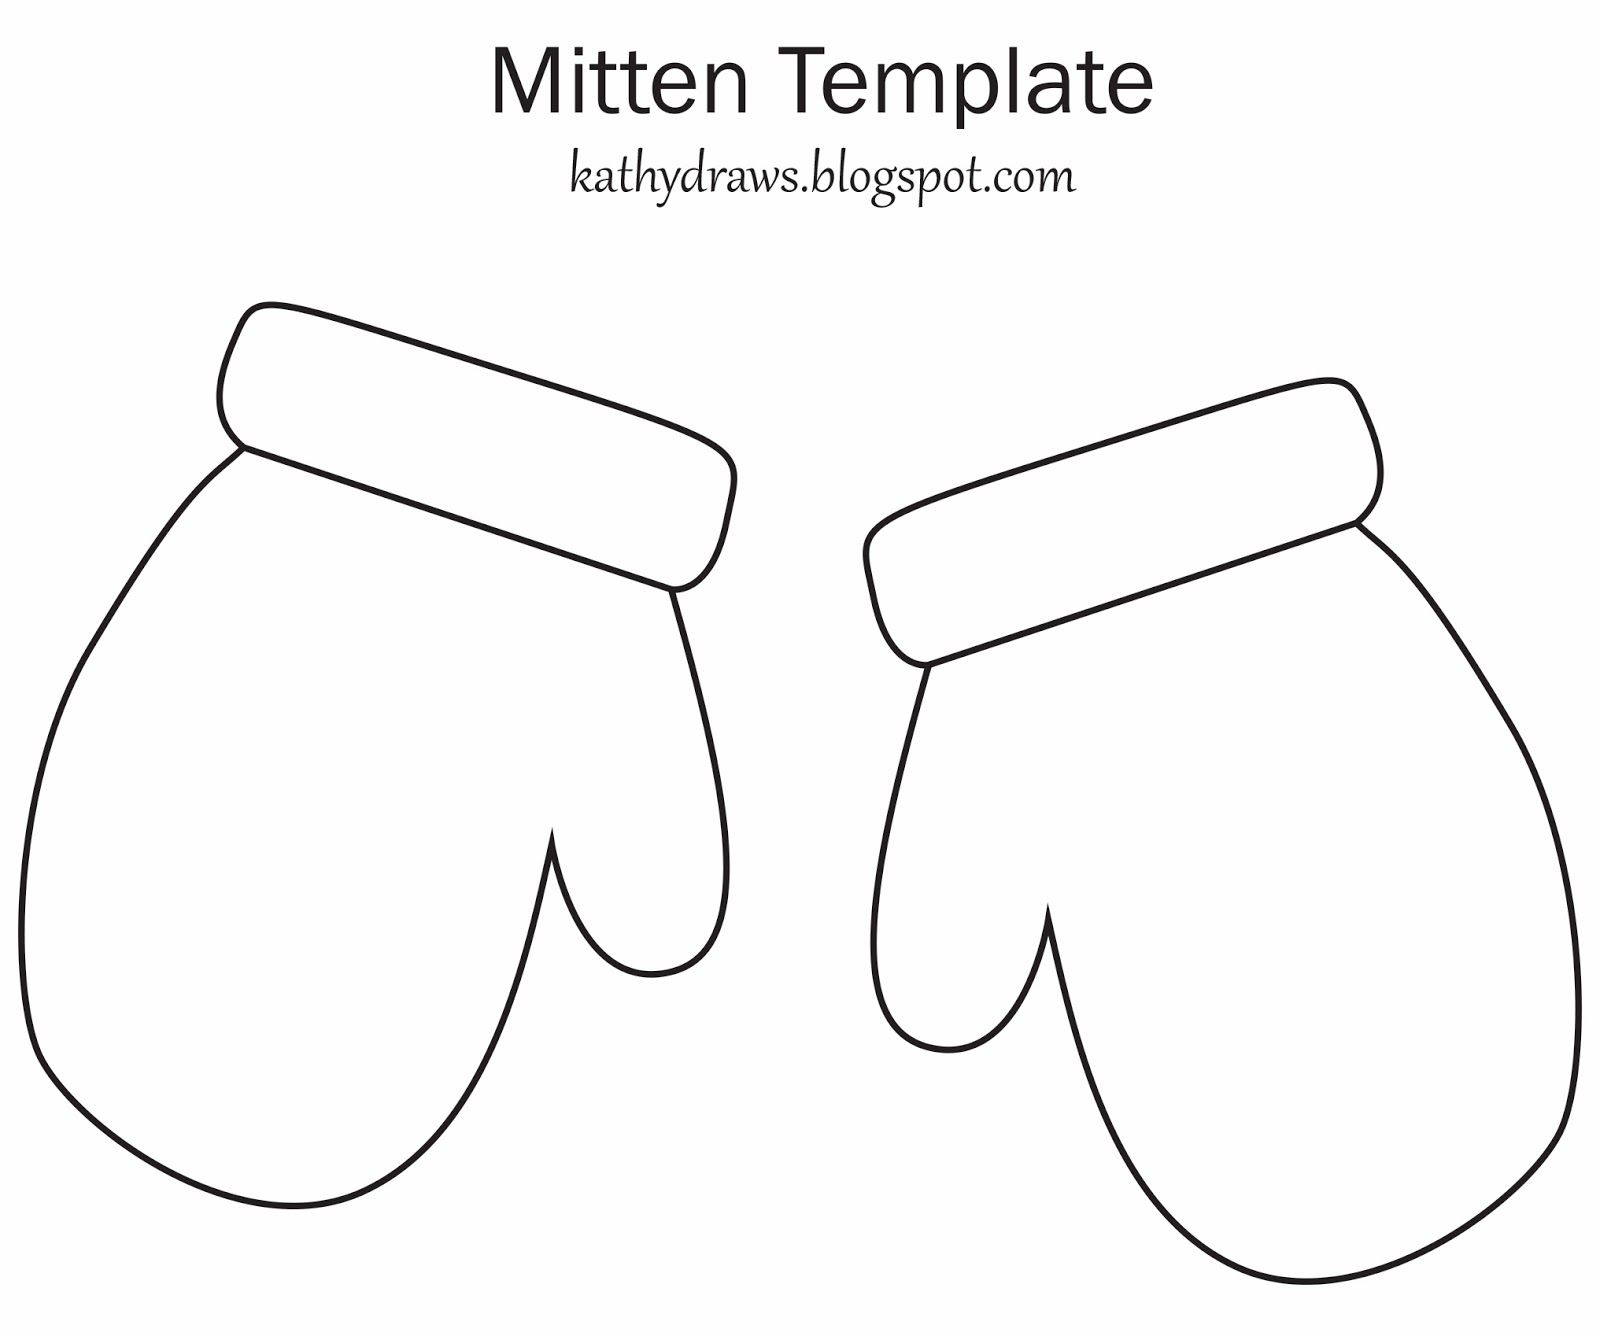 Mitten Template For Writing Images